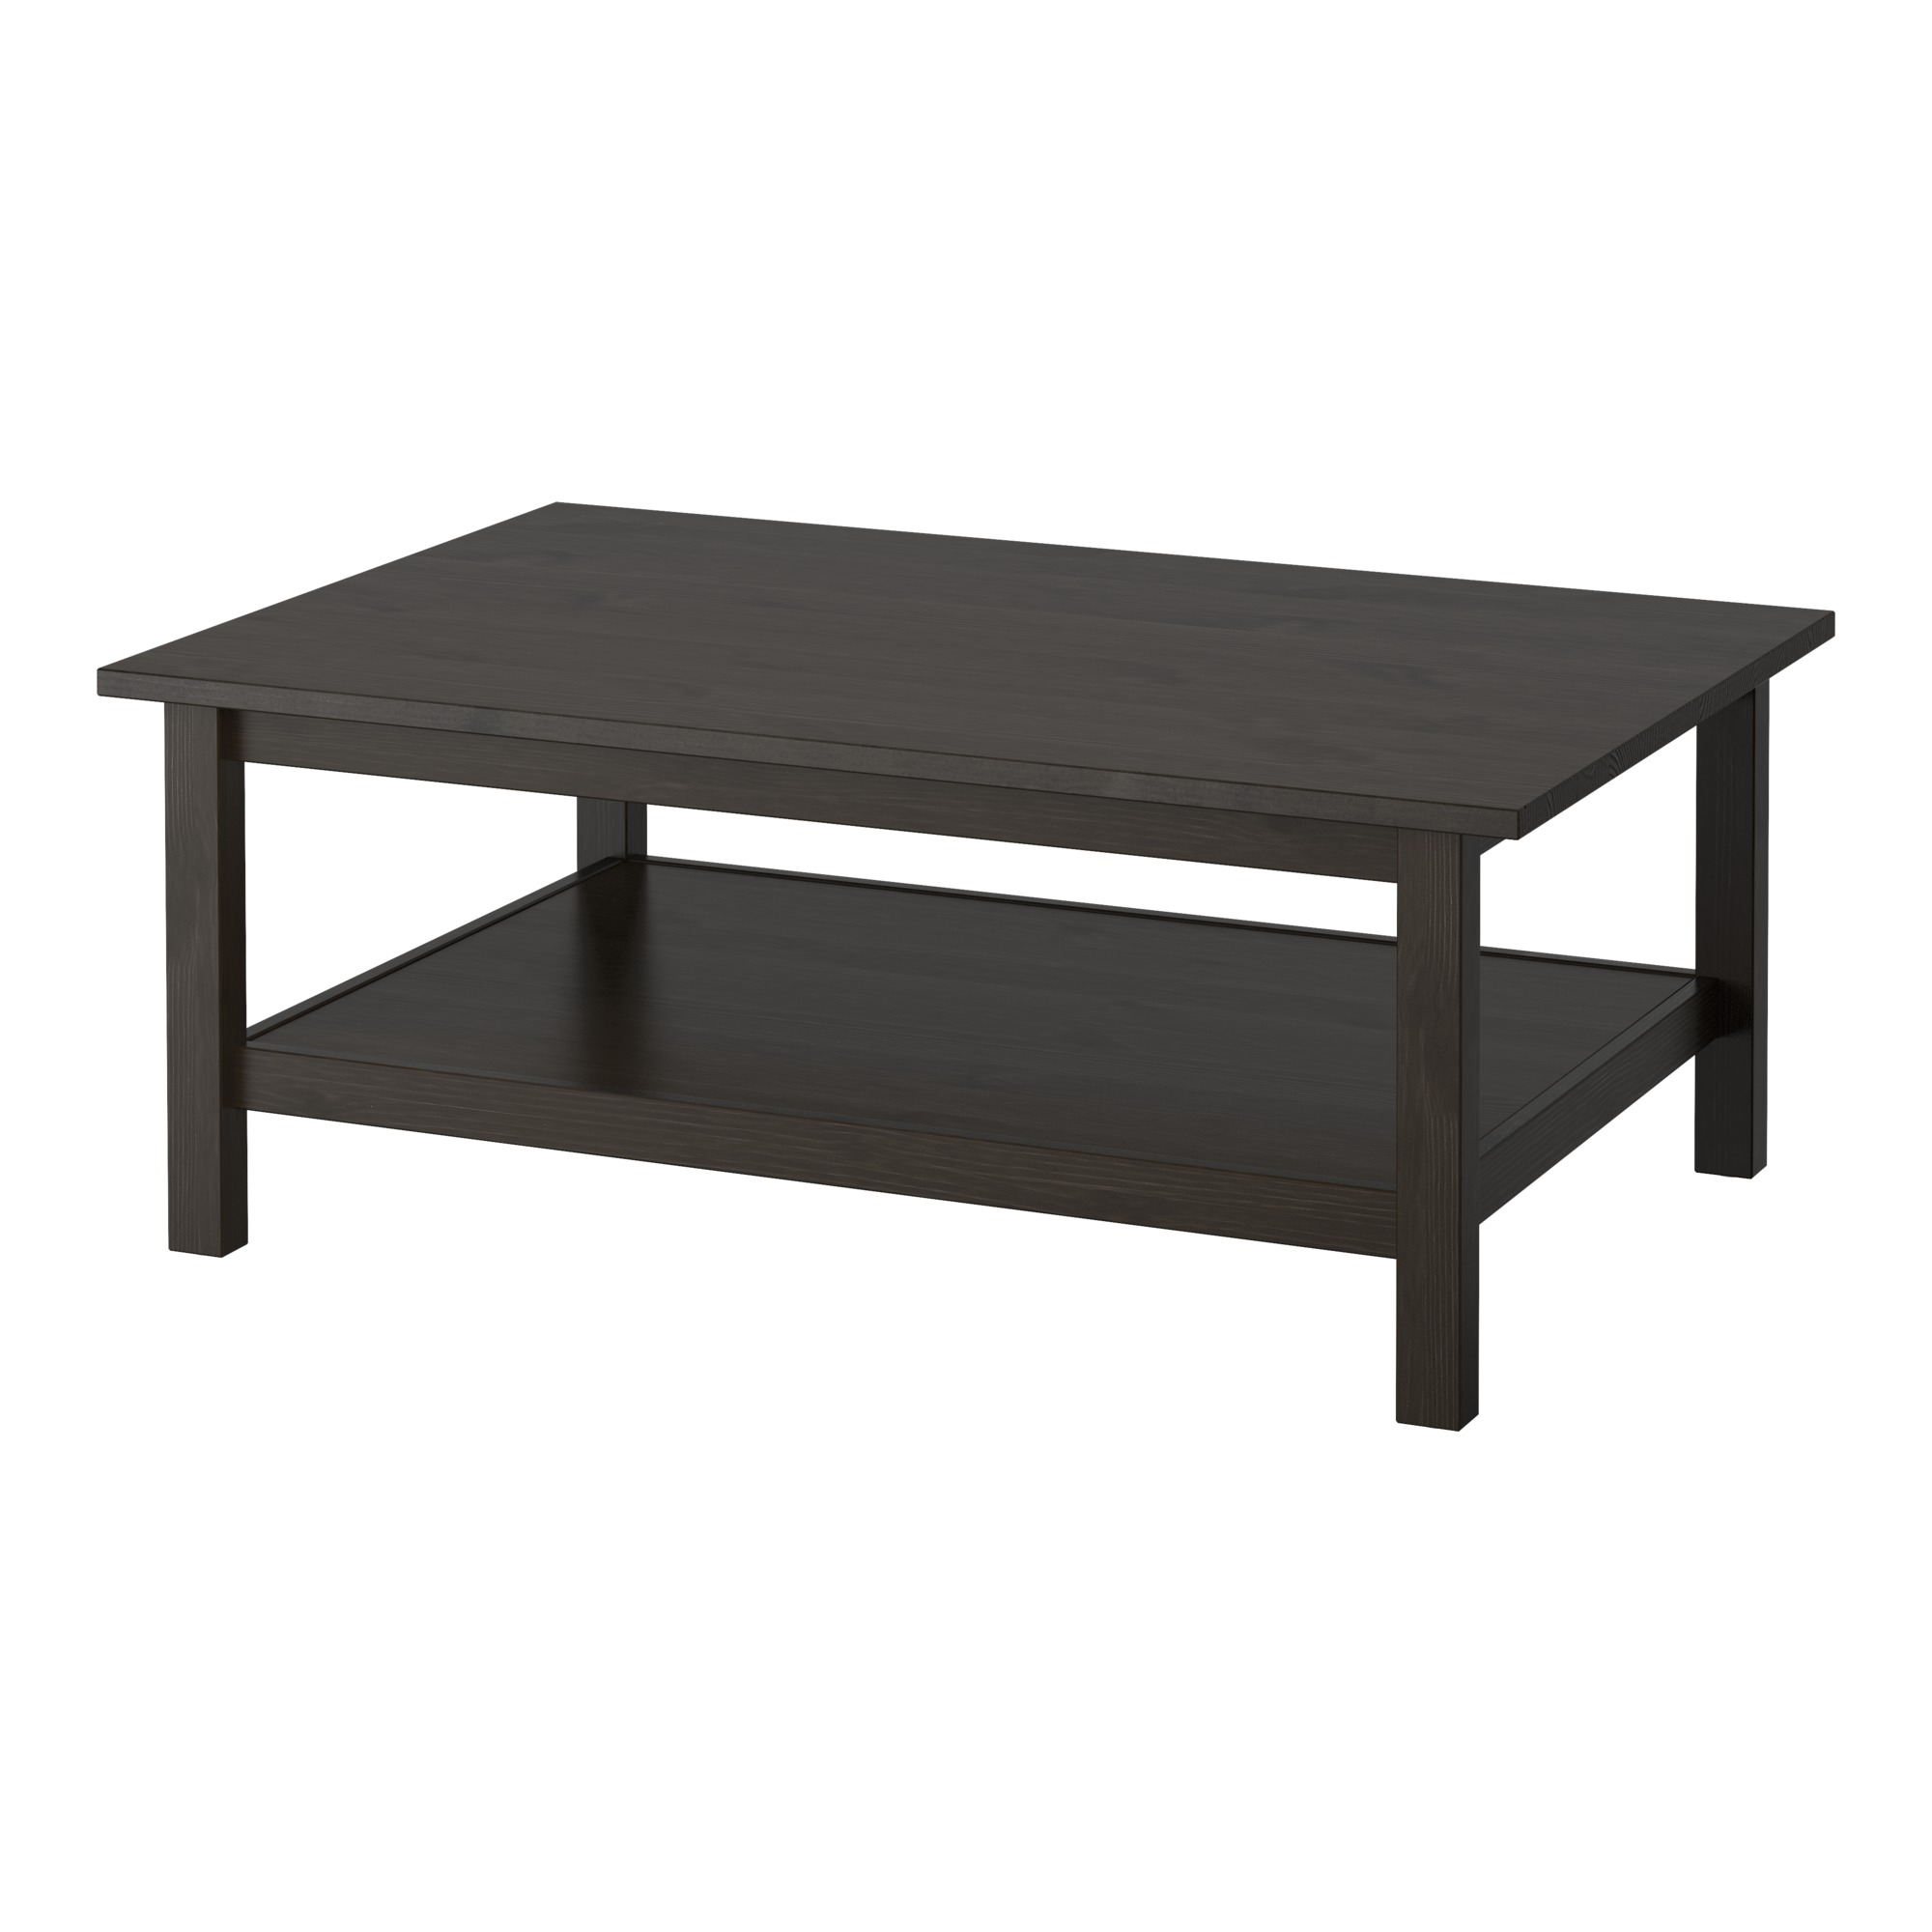 coffee-tables-at-ikea-Grey-Lift-up-Modern-Coffee-Table-Mechanism-Hardware-Fitting-Furniture-Hinge-Spring (Image 4 of 10)